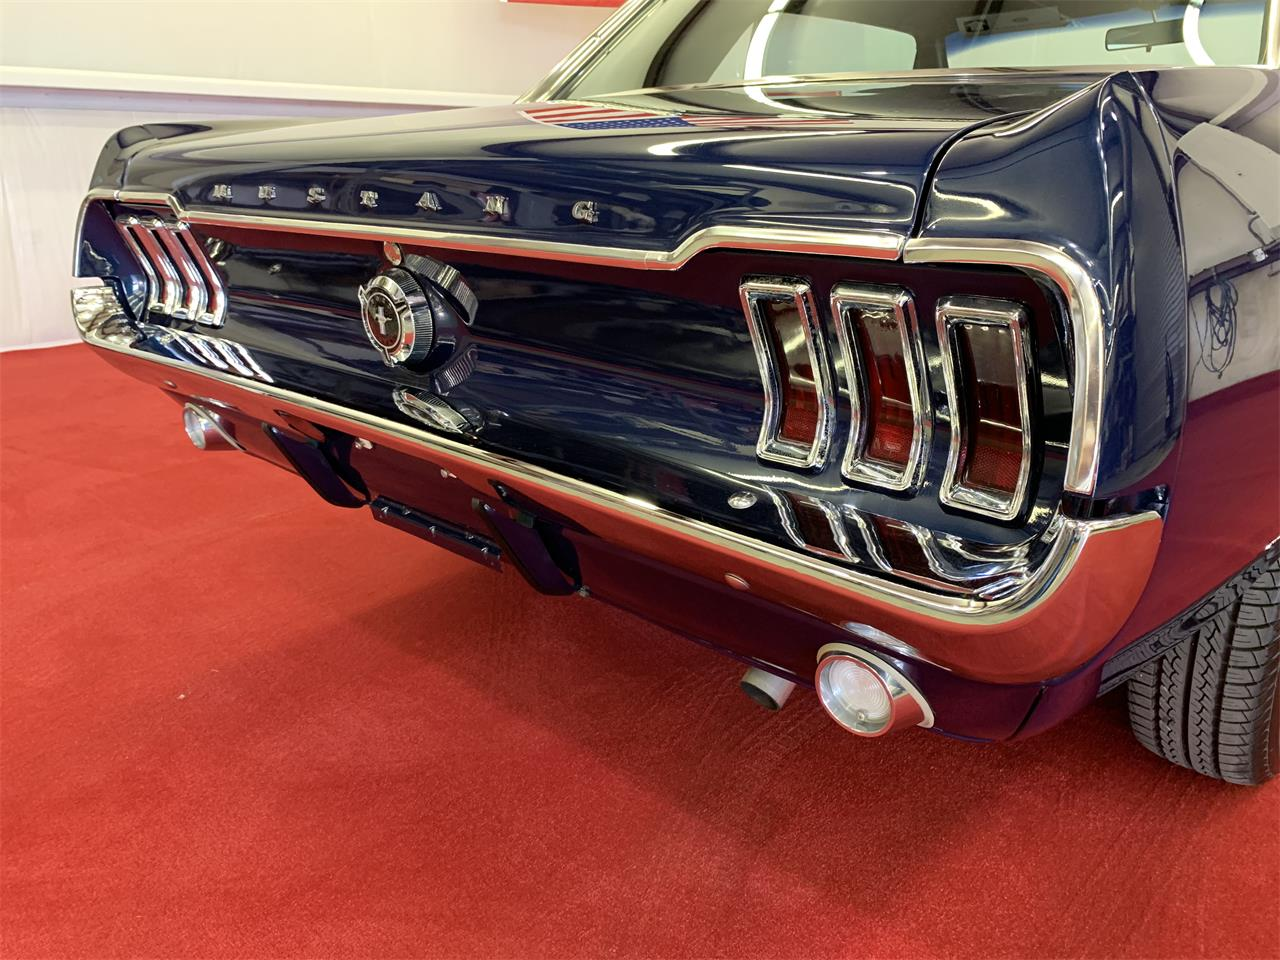 Large Picture of '67 Ford Mustang located in South Carolina - $25,000.00 - OYJ6